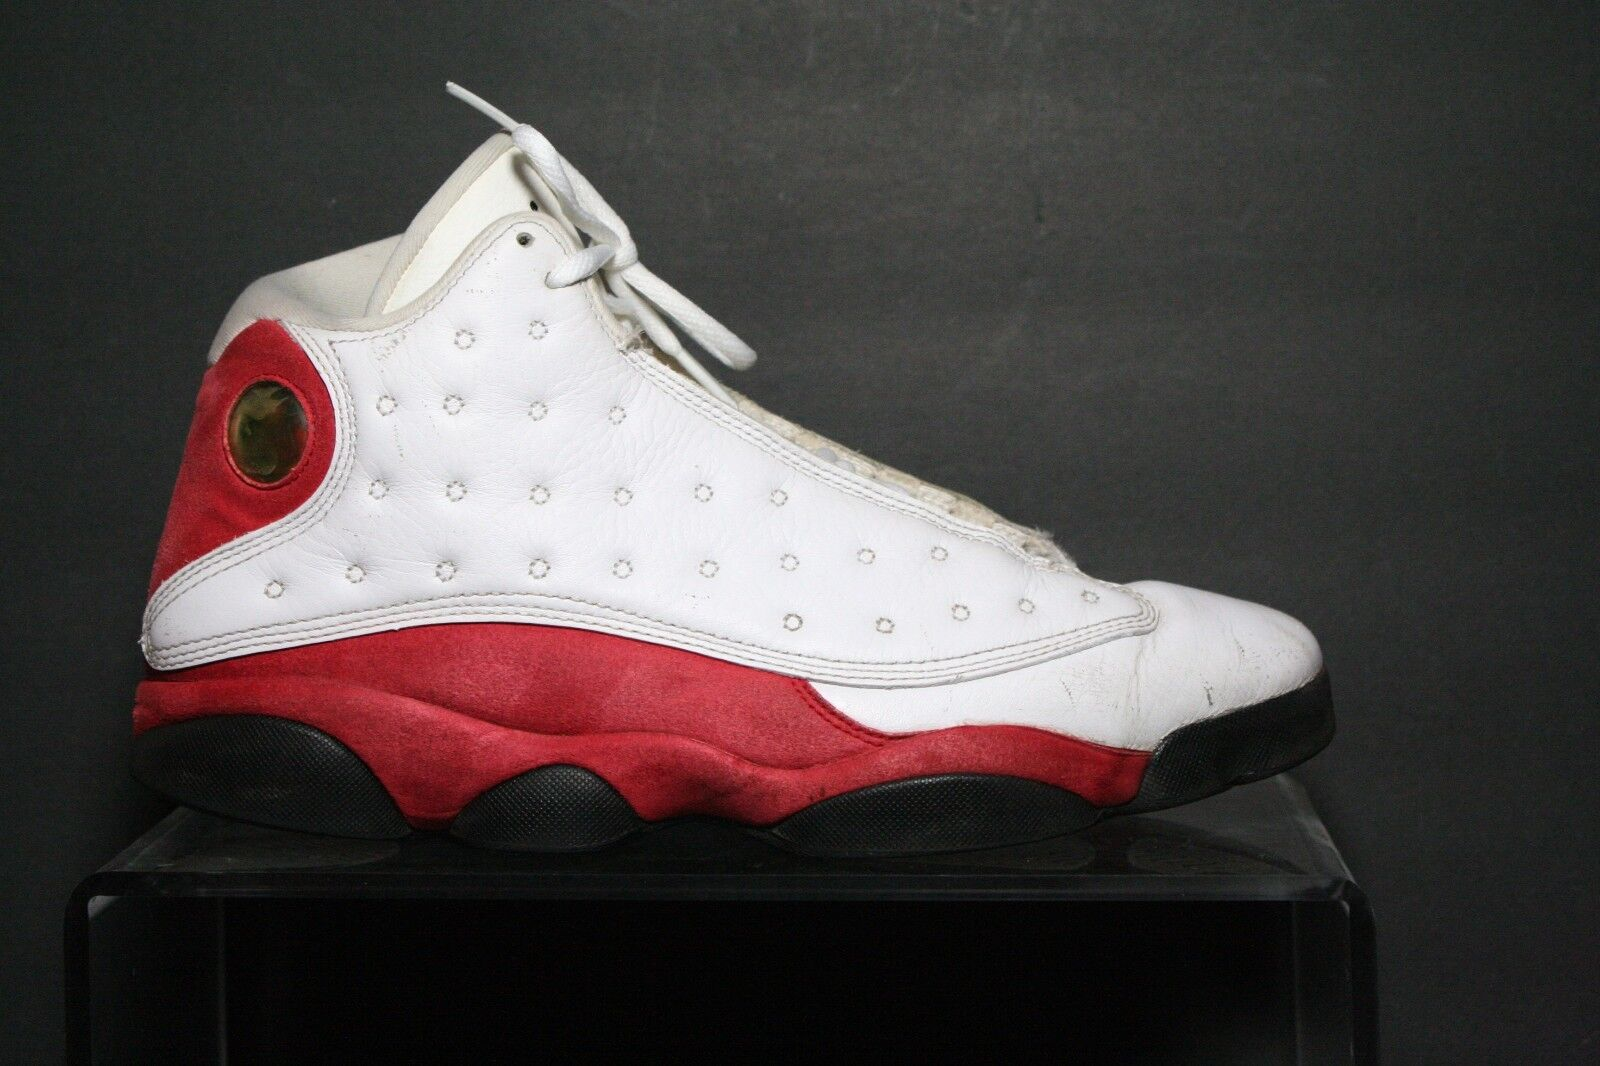 Nike Air Jordan 13 XIII Retro 2010 Release Multi Red White Men 10.5 Bred Hipster